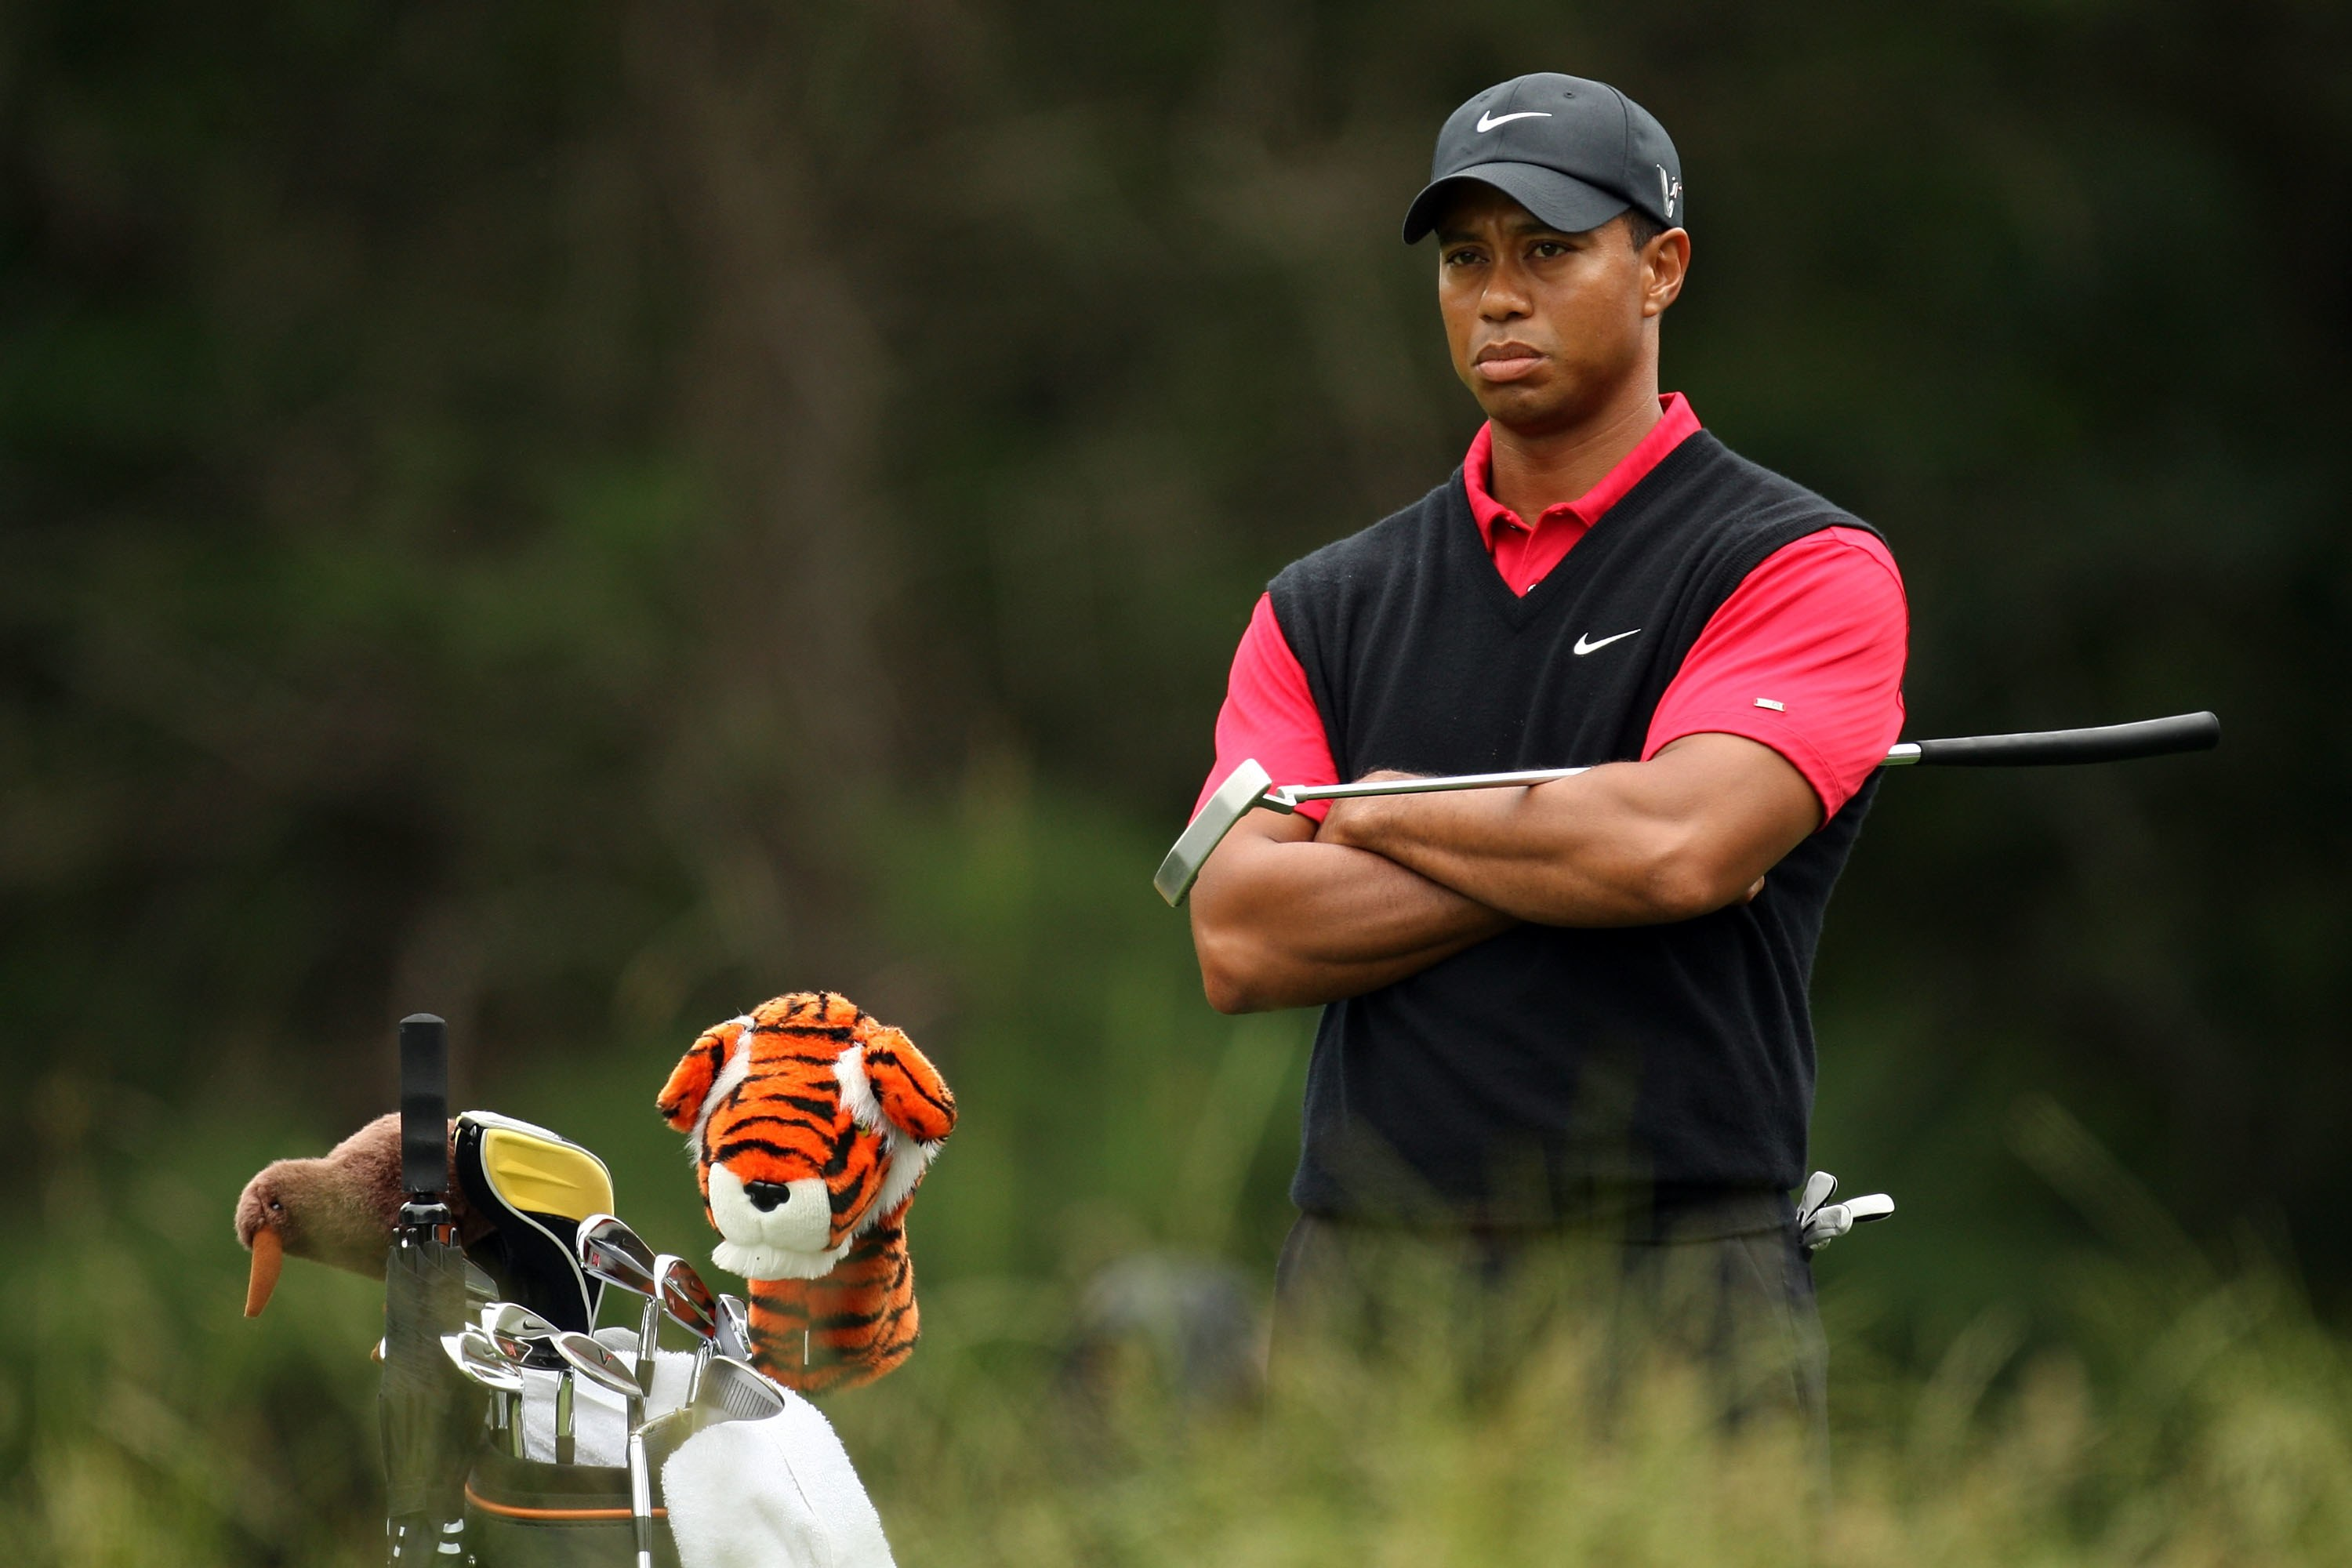 the life and career of tiger woods Tiger woods' real name is eldrick tont woods he was the only child to a thai mother and an african-american father his father was a big inspiration in his life.